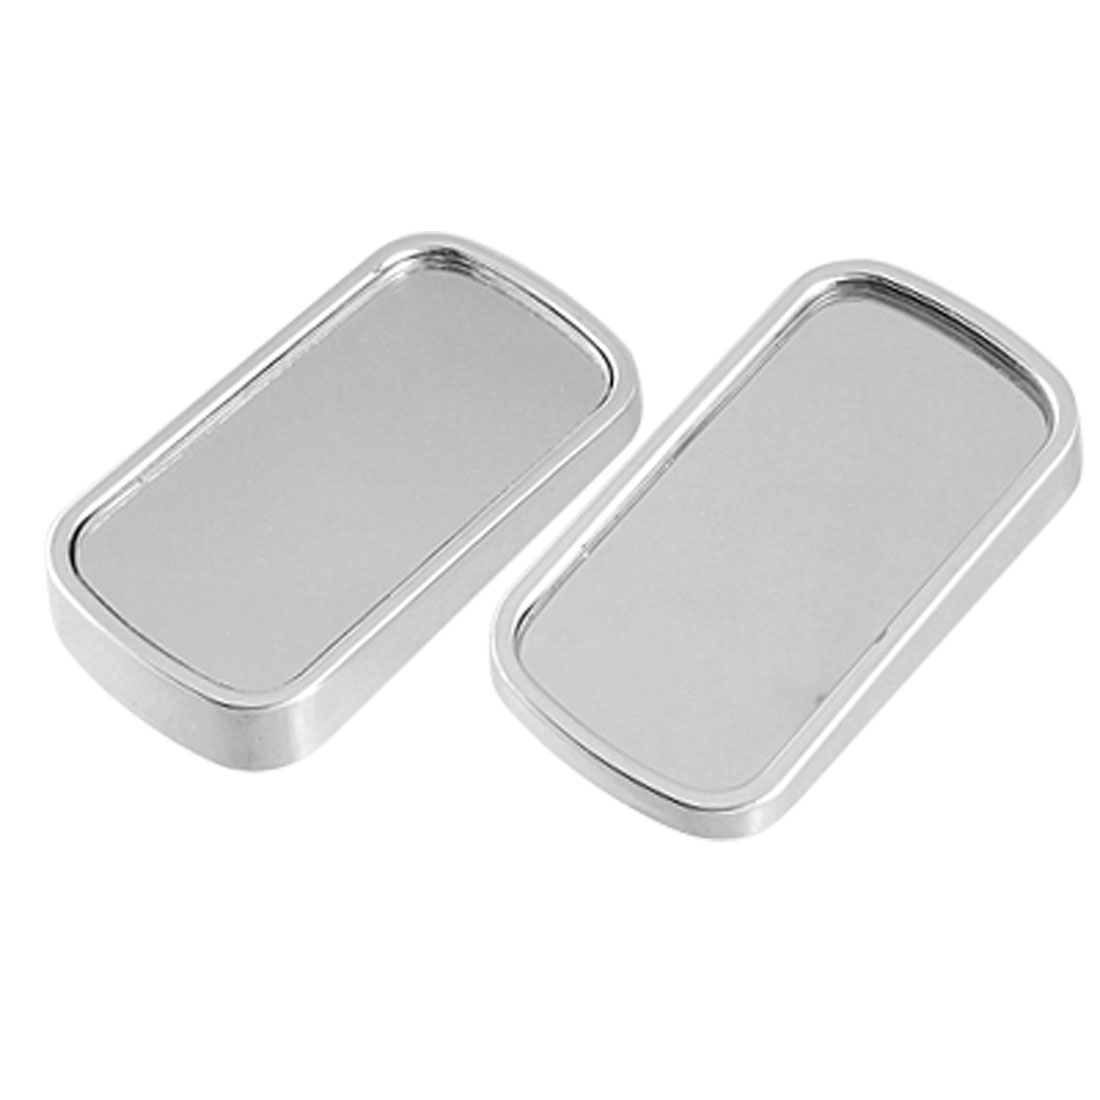 2pcs Silver Tone Car Rectangle Aluminum Alloy Rearview Blind Spot Convex Mirror